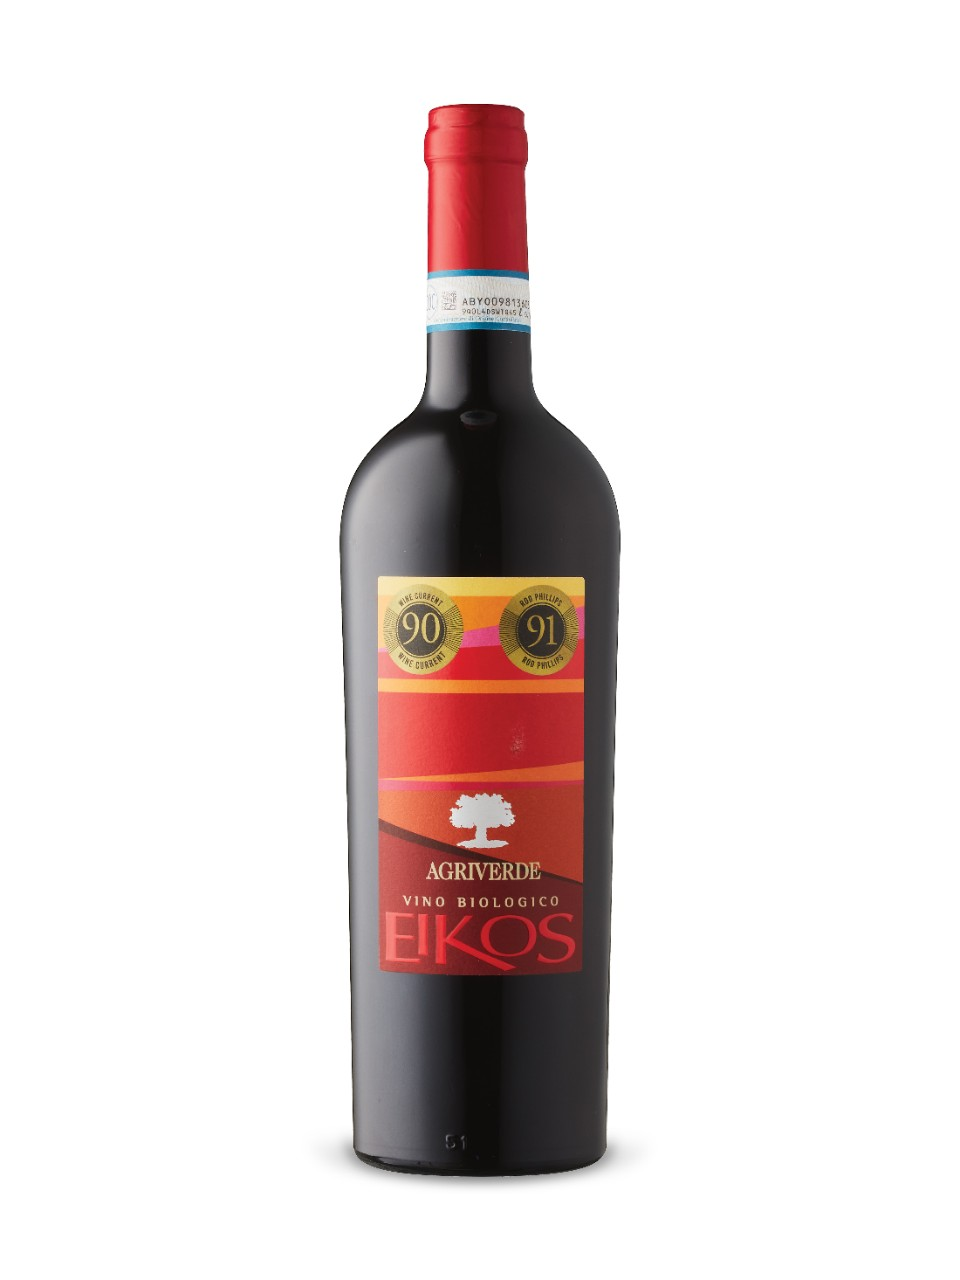 Agriverde Eikos Montepulciano d'Abruzzo 2017 from LCBO